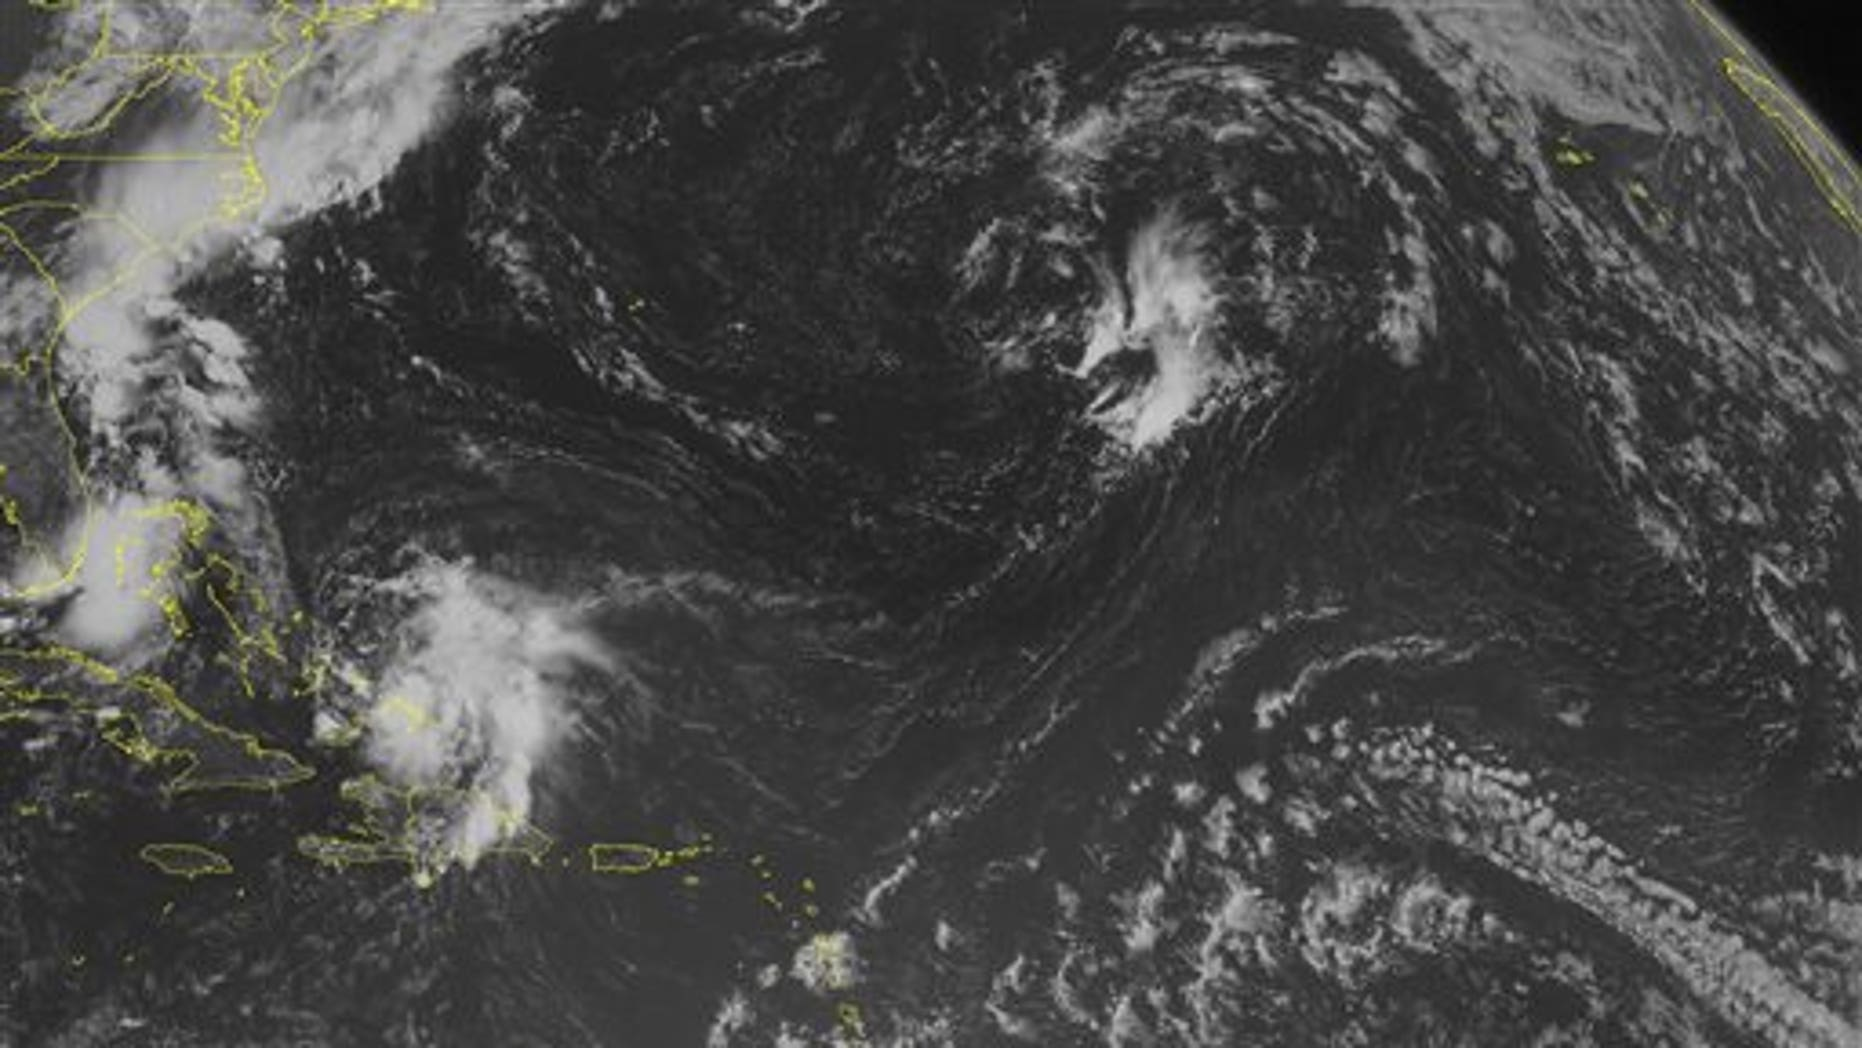 This NOAA satellite image taken Sunday, August 03, 2014 at 10:45 AM EDT shows Tropical Storm Bertha now moving towards the Bahamas. The storm is about 150 miles south of San Salvador. The winds are sustained at 45 MPH and is moving NW at 18 MPH. The central pressure is 1012 is expected remain the sane intensity. (AP PHOTO/WEATHER UNDERGROUND)